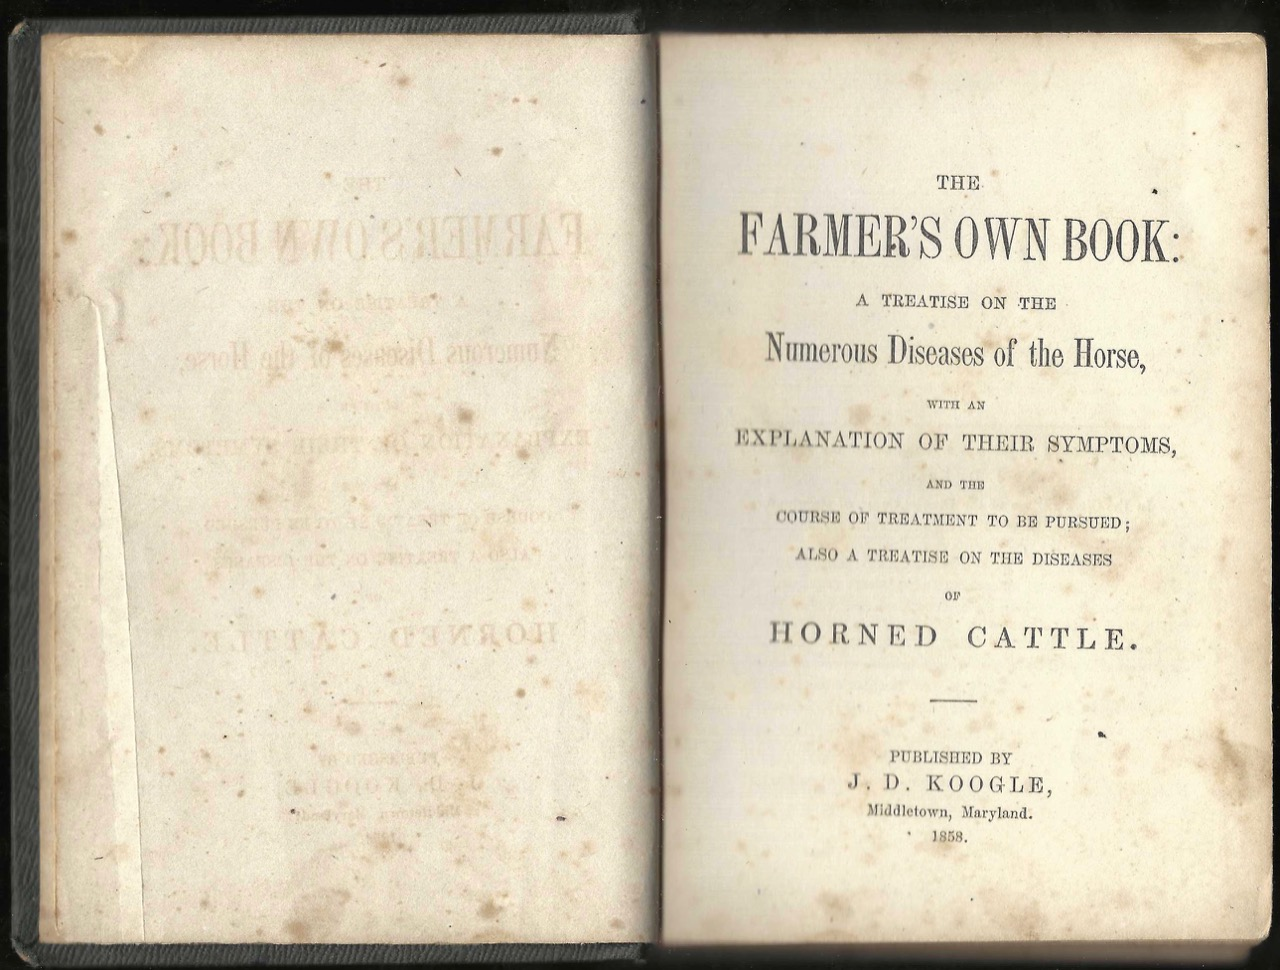 The Farmer's Own Book: A treatise on the numerous diseases of the horse, with an explanation of their symptoms, and the course of treatment to be pursued. J. D. Koogle.